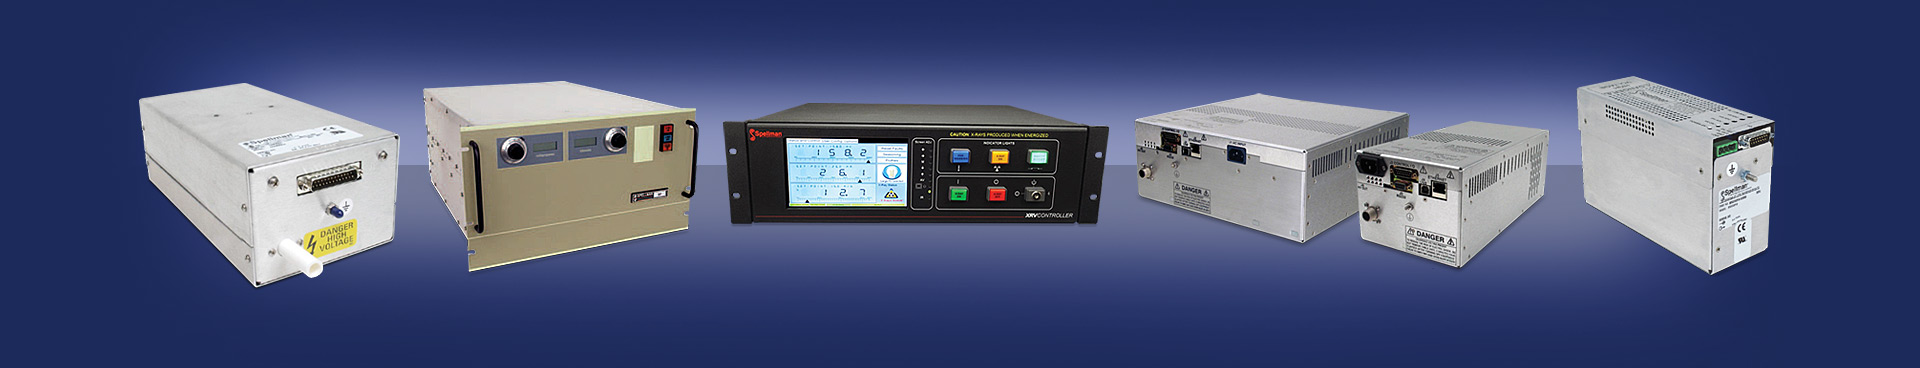 High Voltage Power Supply, X-Ray Source, X-Ray Generators from Spellman High Voltage Electronics Corp.